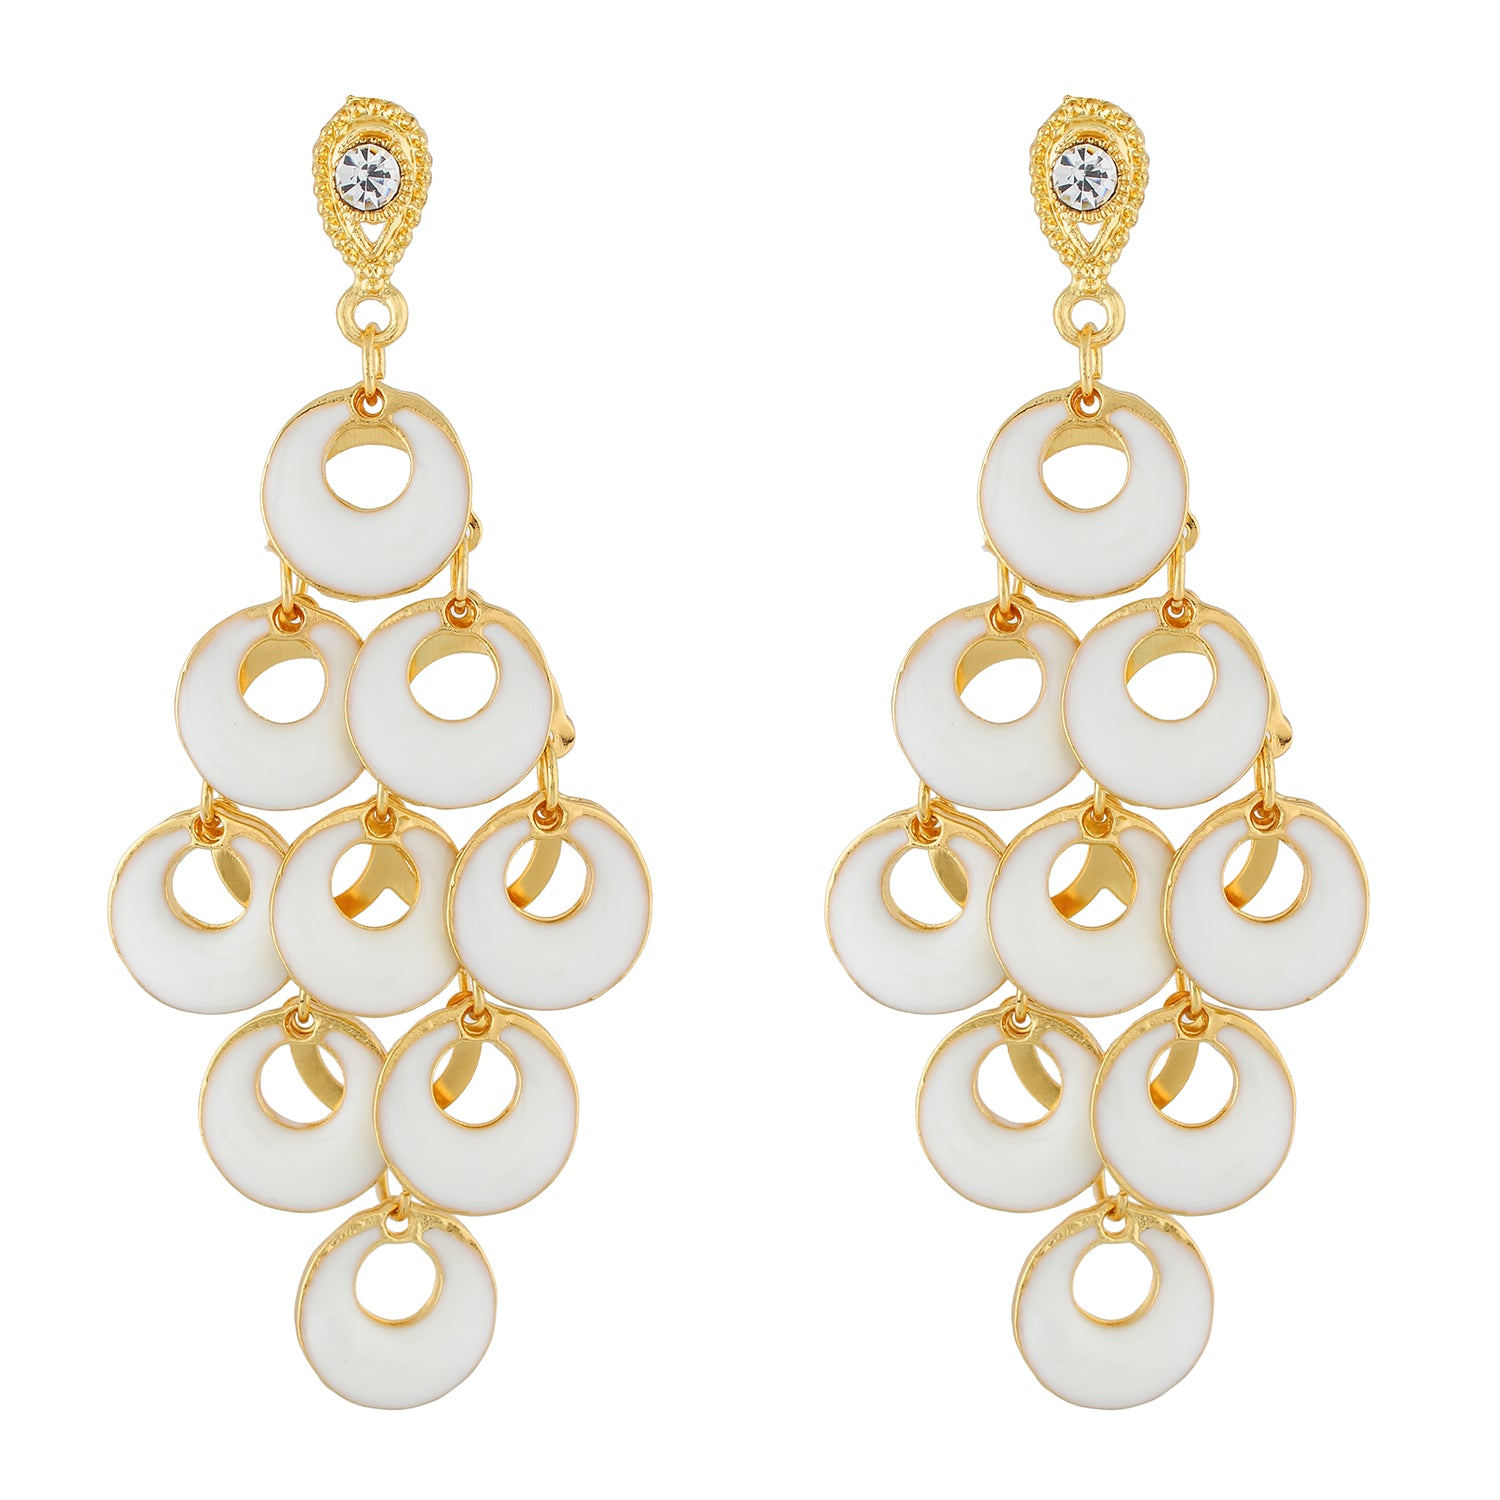 Dashing White and Gold Colour Bunch of Circles Design Earring for Girls and Women